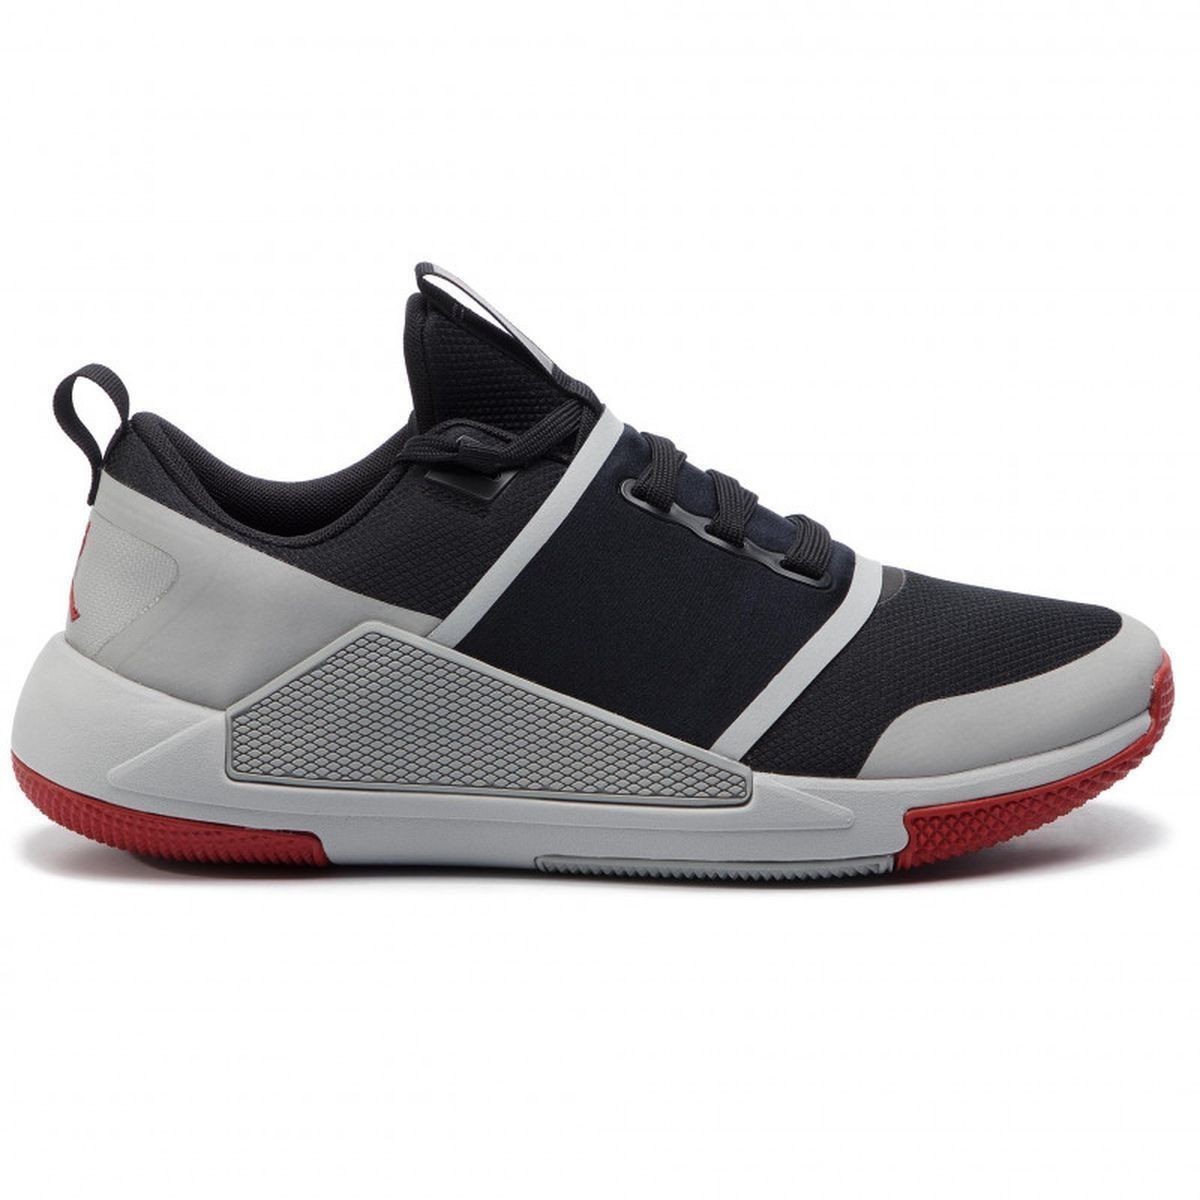 GRAND COURT I JORDAN DELTA SPEED TR:NOIR/SYNTHETIQUE, MESH/TEXTILE/CAOUTCHOUC/Noir